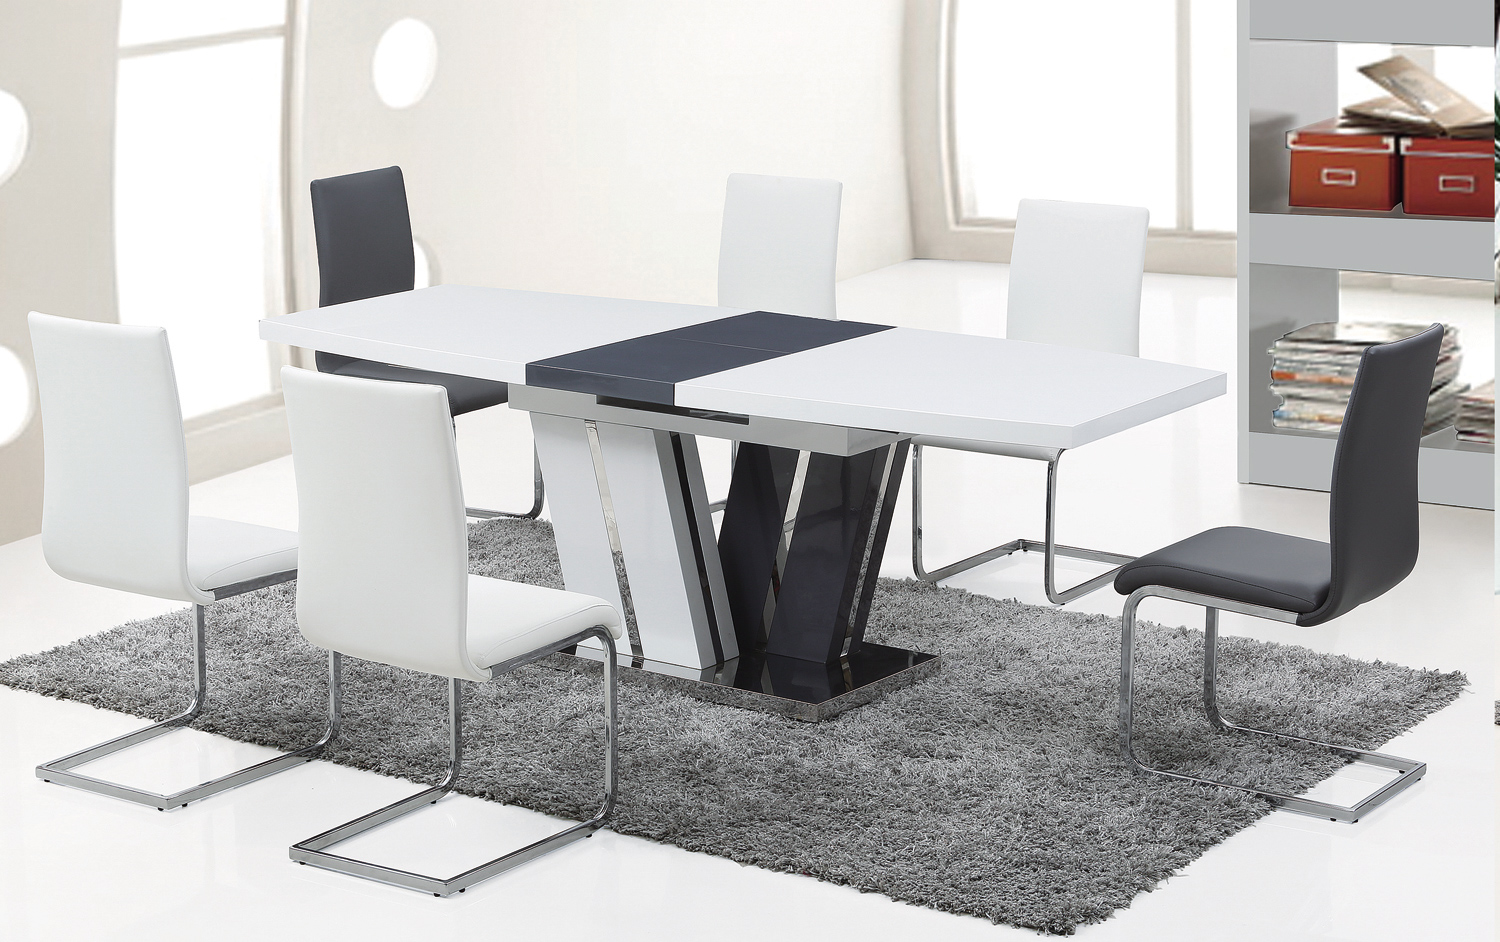 Tacoma modern dining table